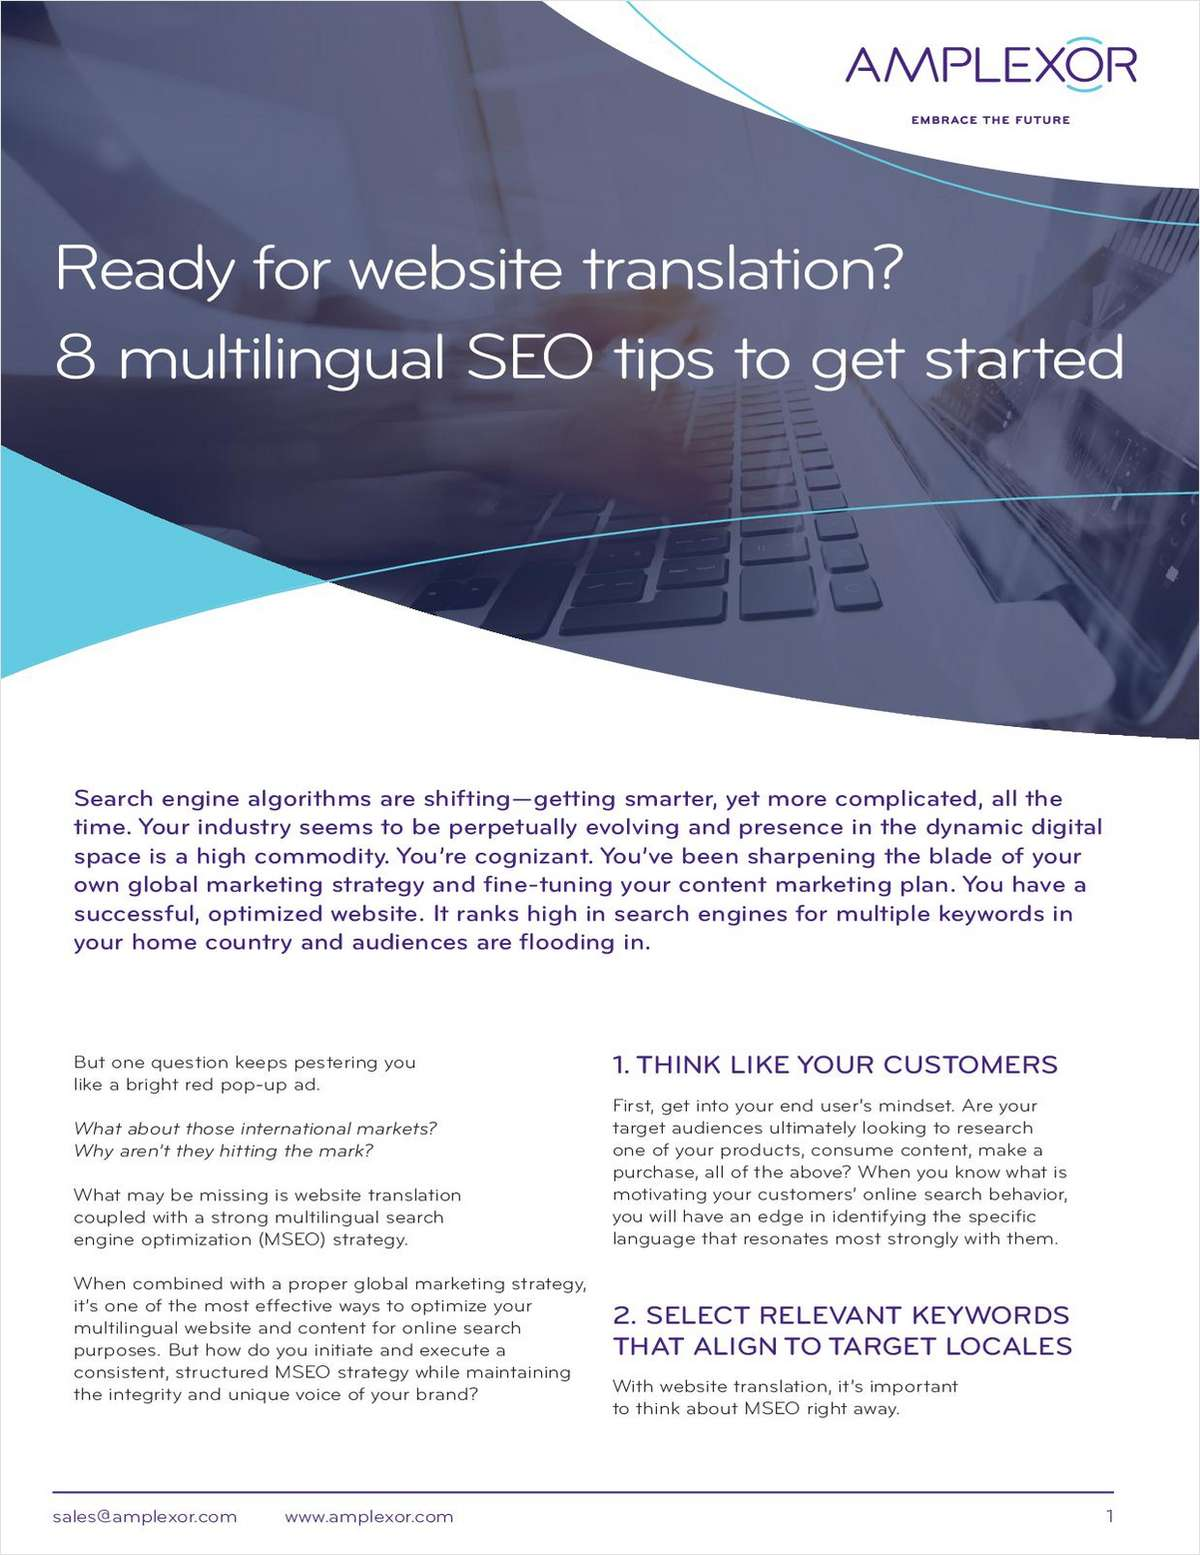 Ready for website translation? 8 multilingual SEO tips to get started